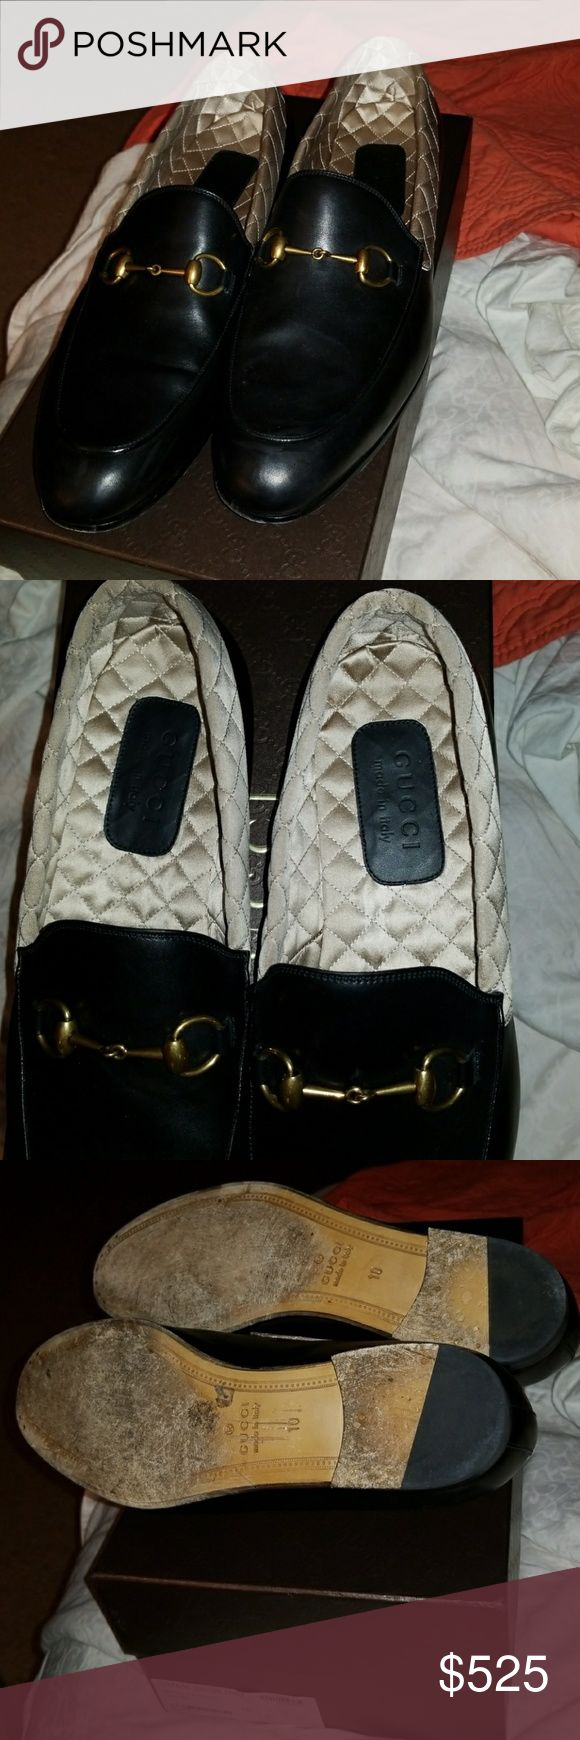 Men dress shoes Belt Glamour Raso Seta Nero/Cream Gucci Gucci Shoes Loafers & Slip-Ons